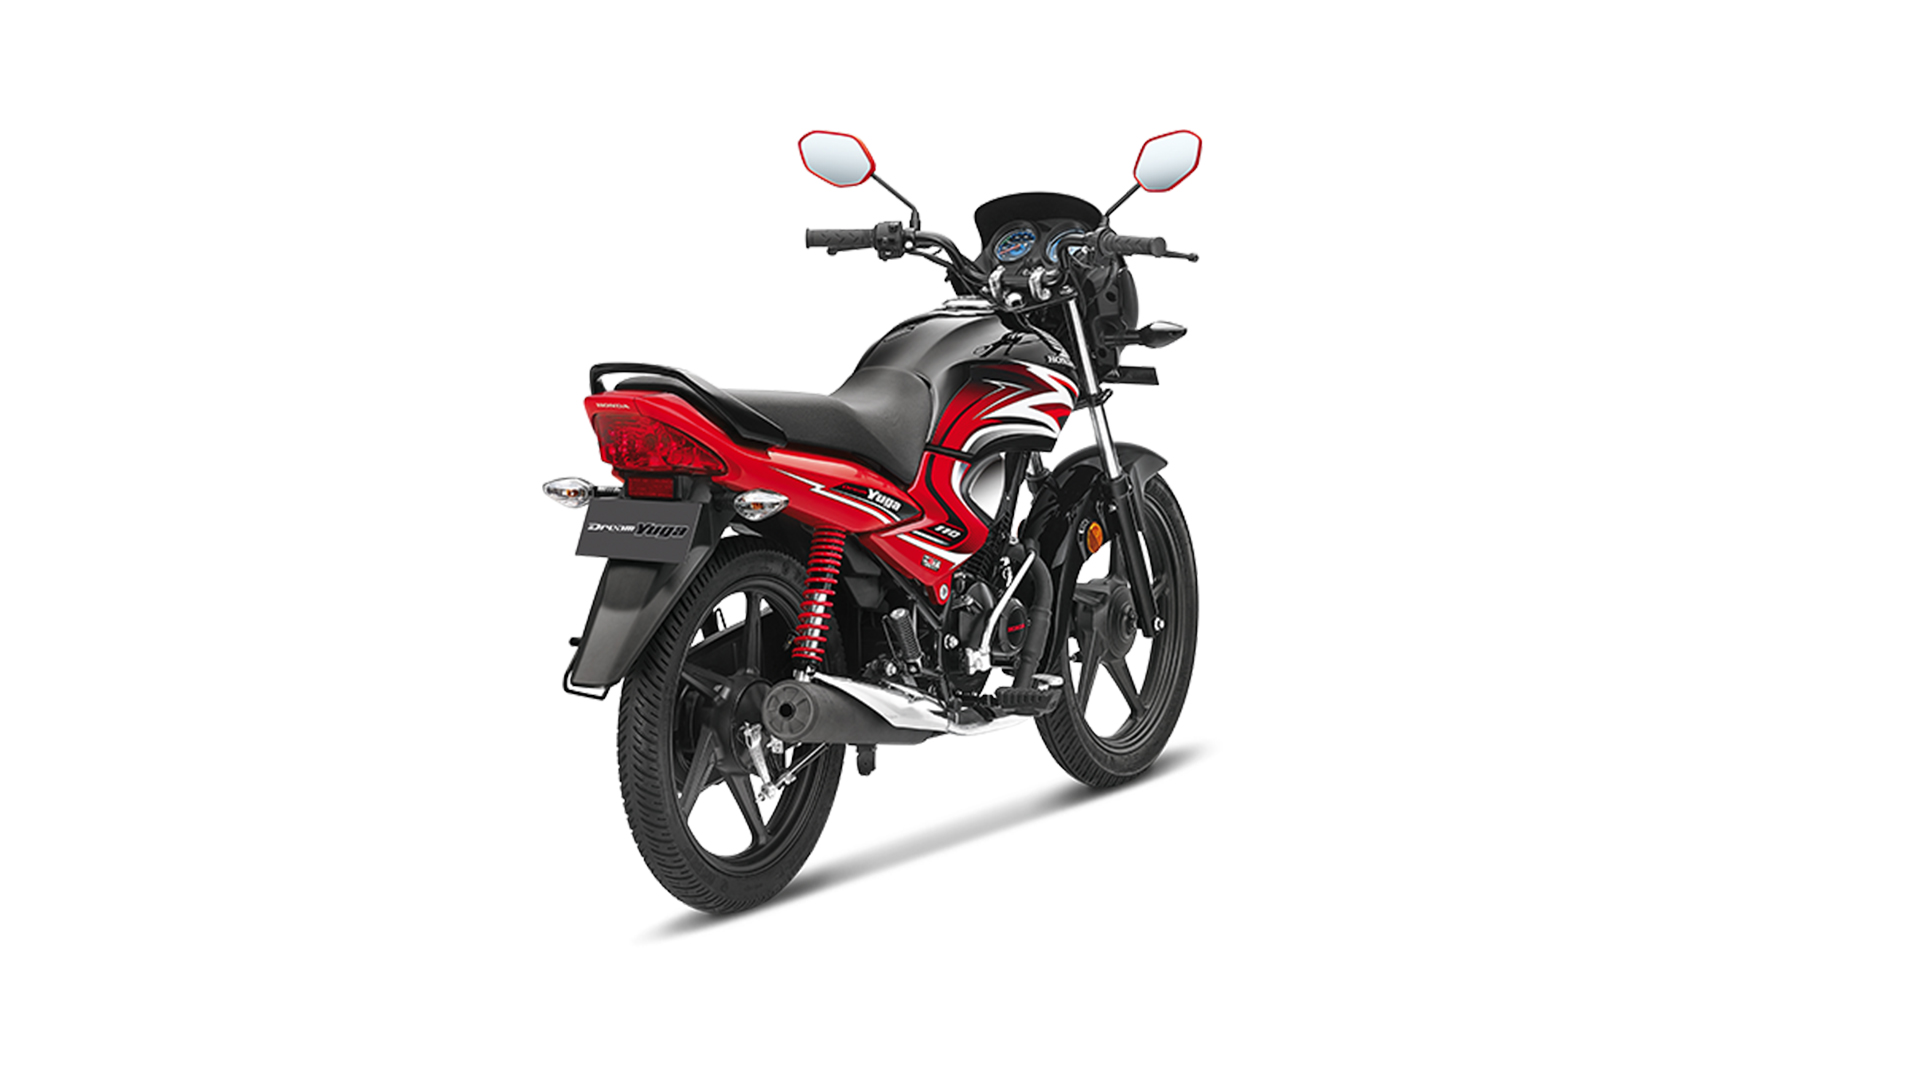 Honda Dream Yuga 2018 Price Mileage Reviews Specification Gallery Overdrive